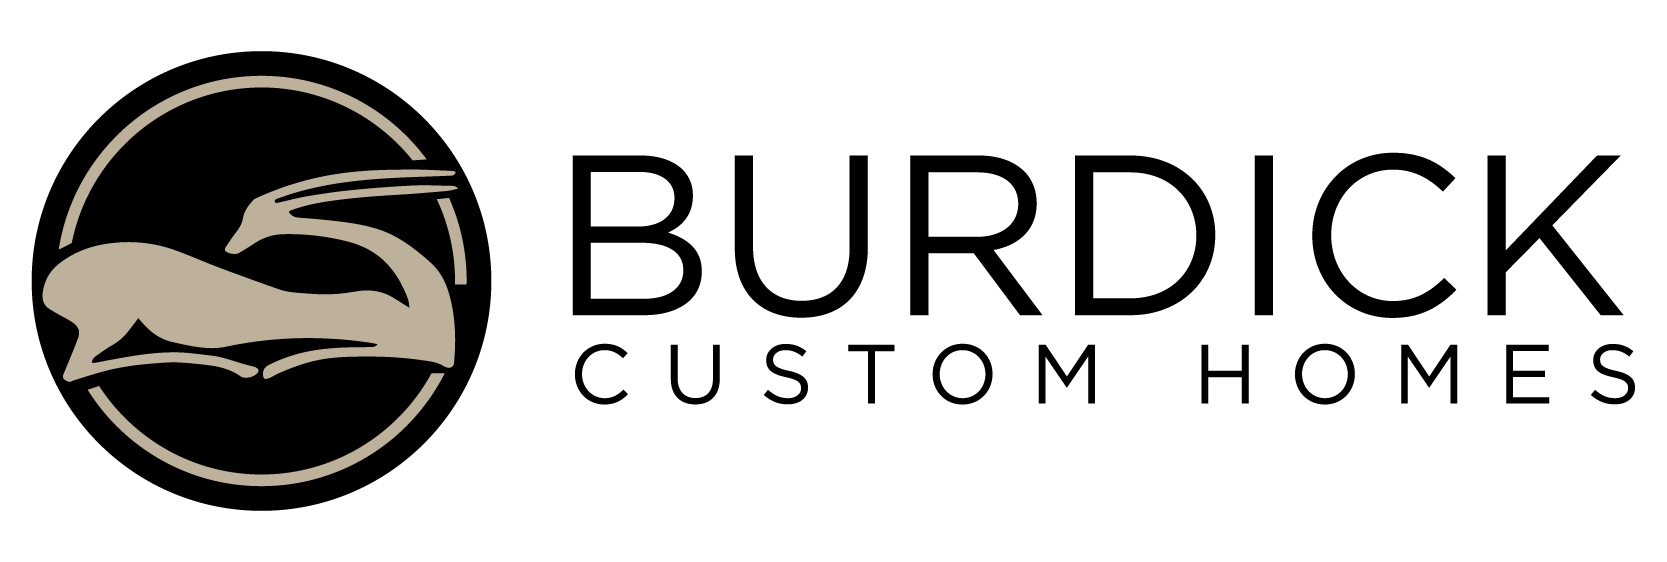 Image result for burdick custom homes san antonio